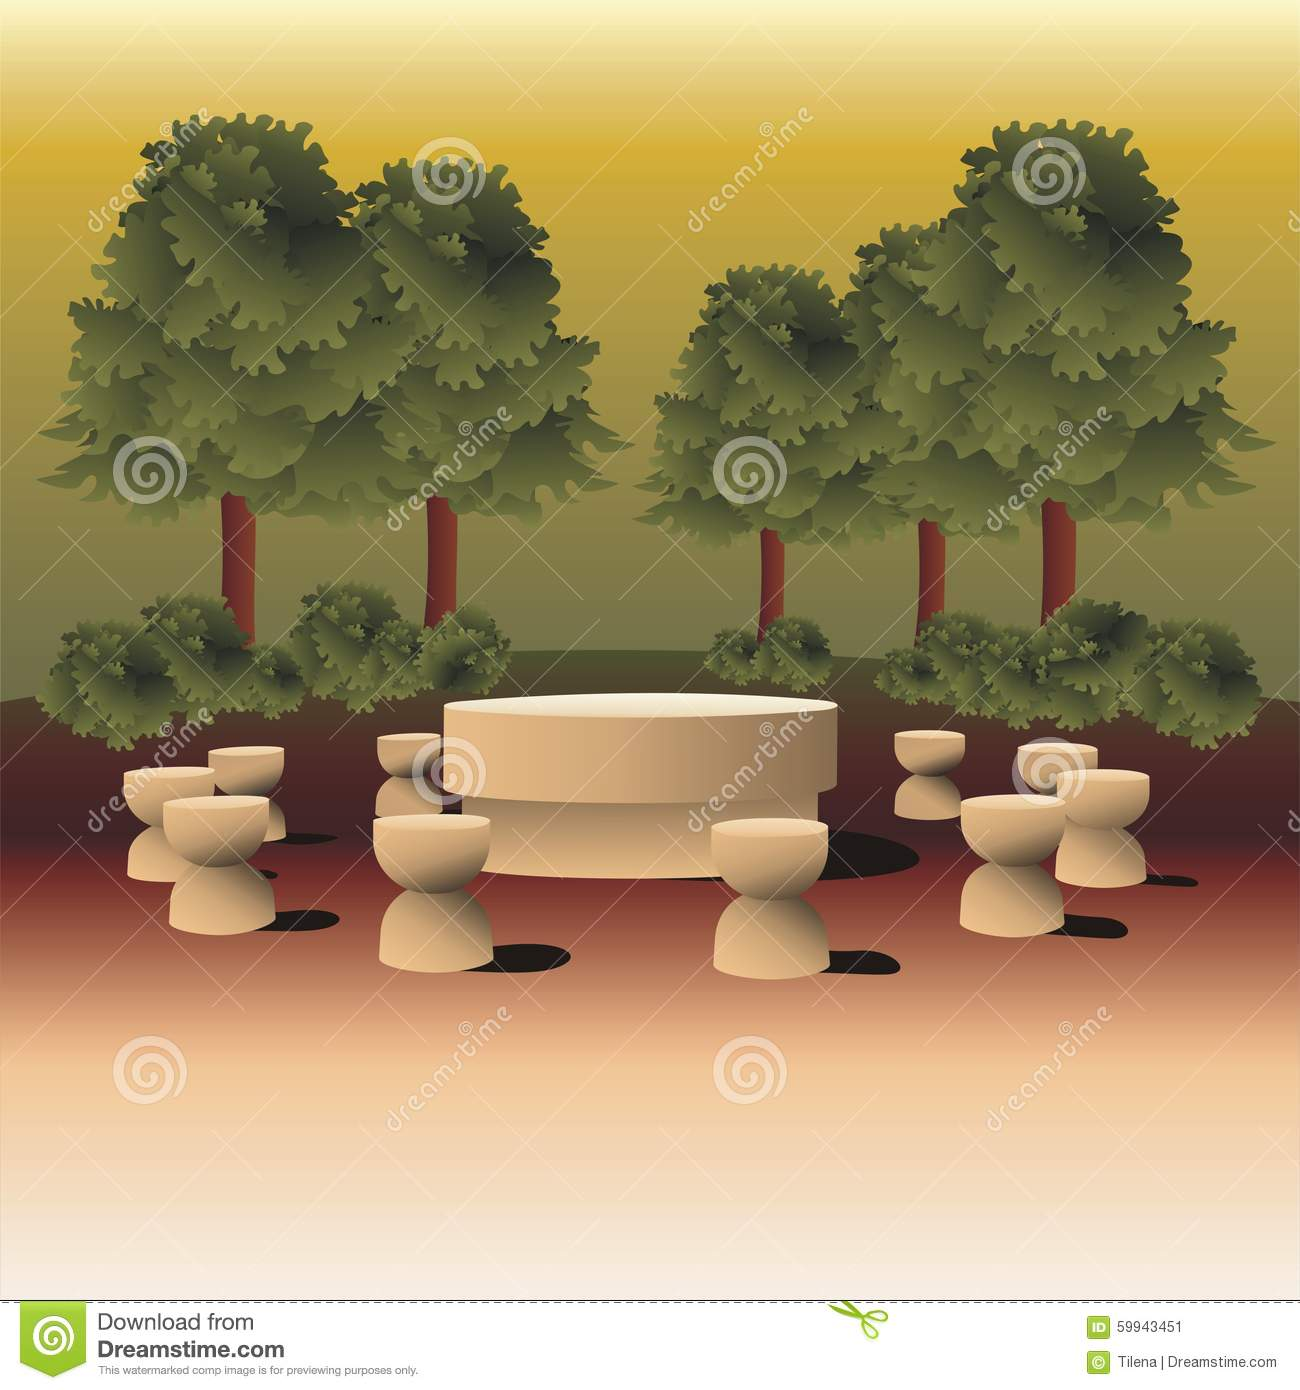 Landscape illustration inspired by Table of Silence sculpture